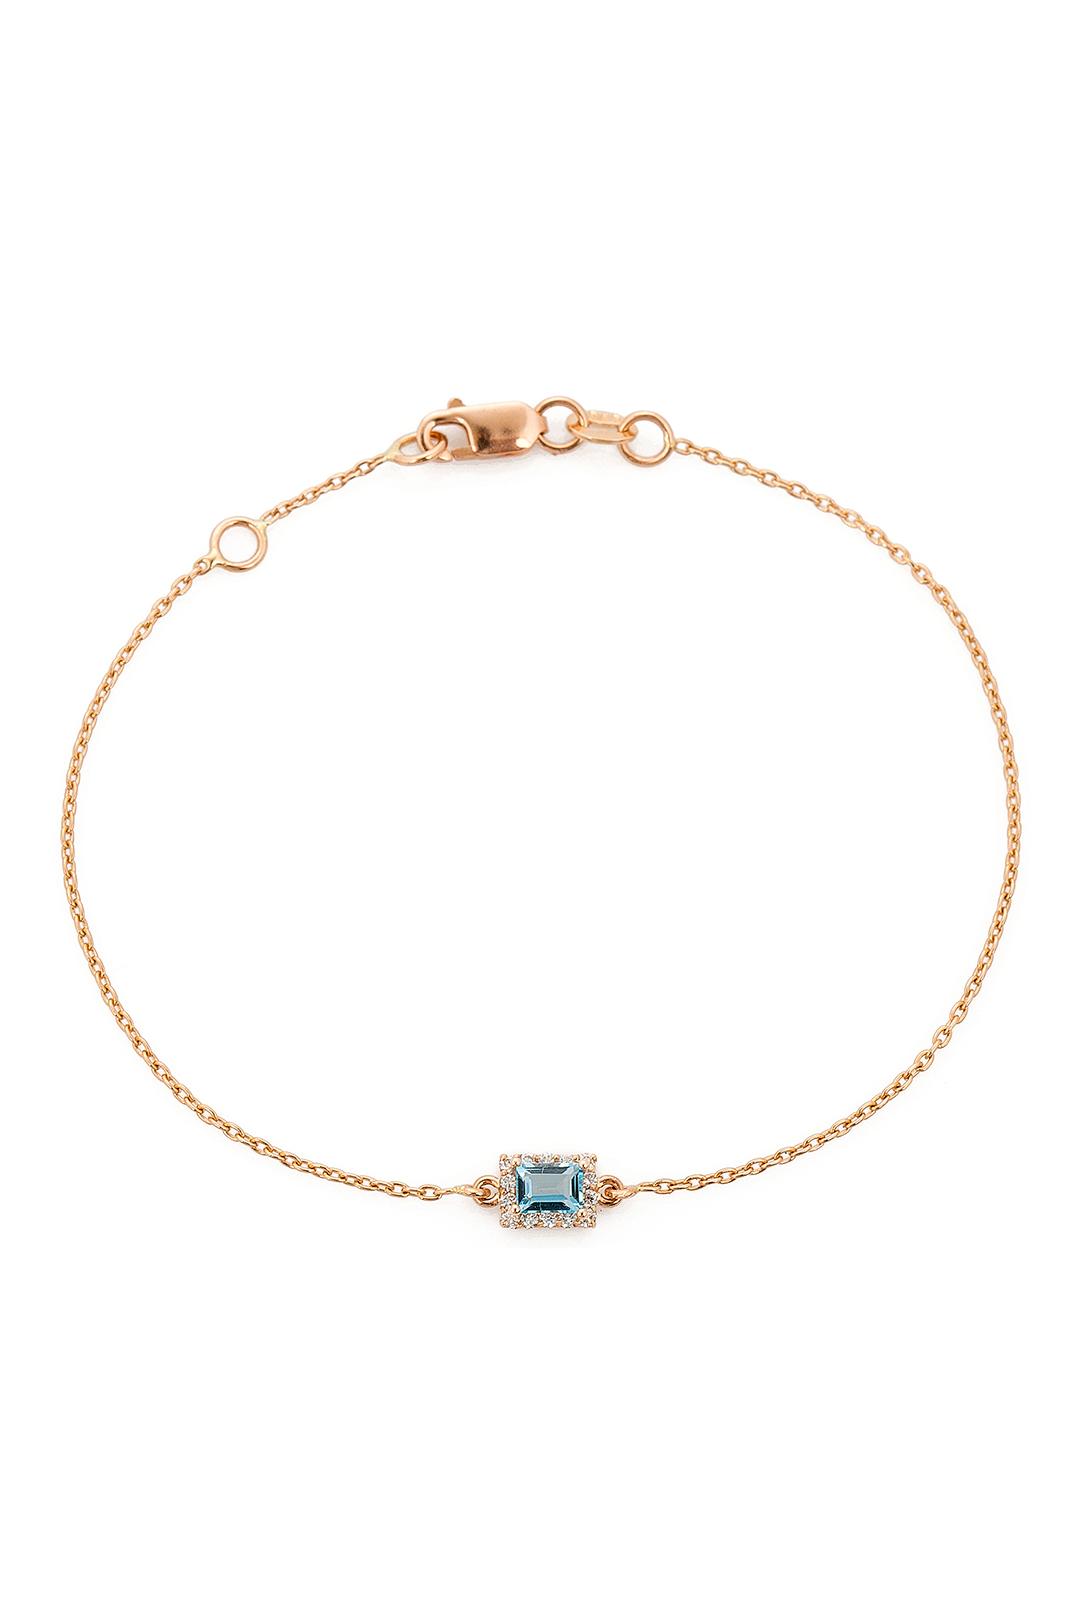 RECTANGLE AQUAMARINE AND DIAMOND BRACELET